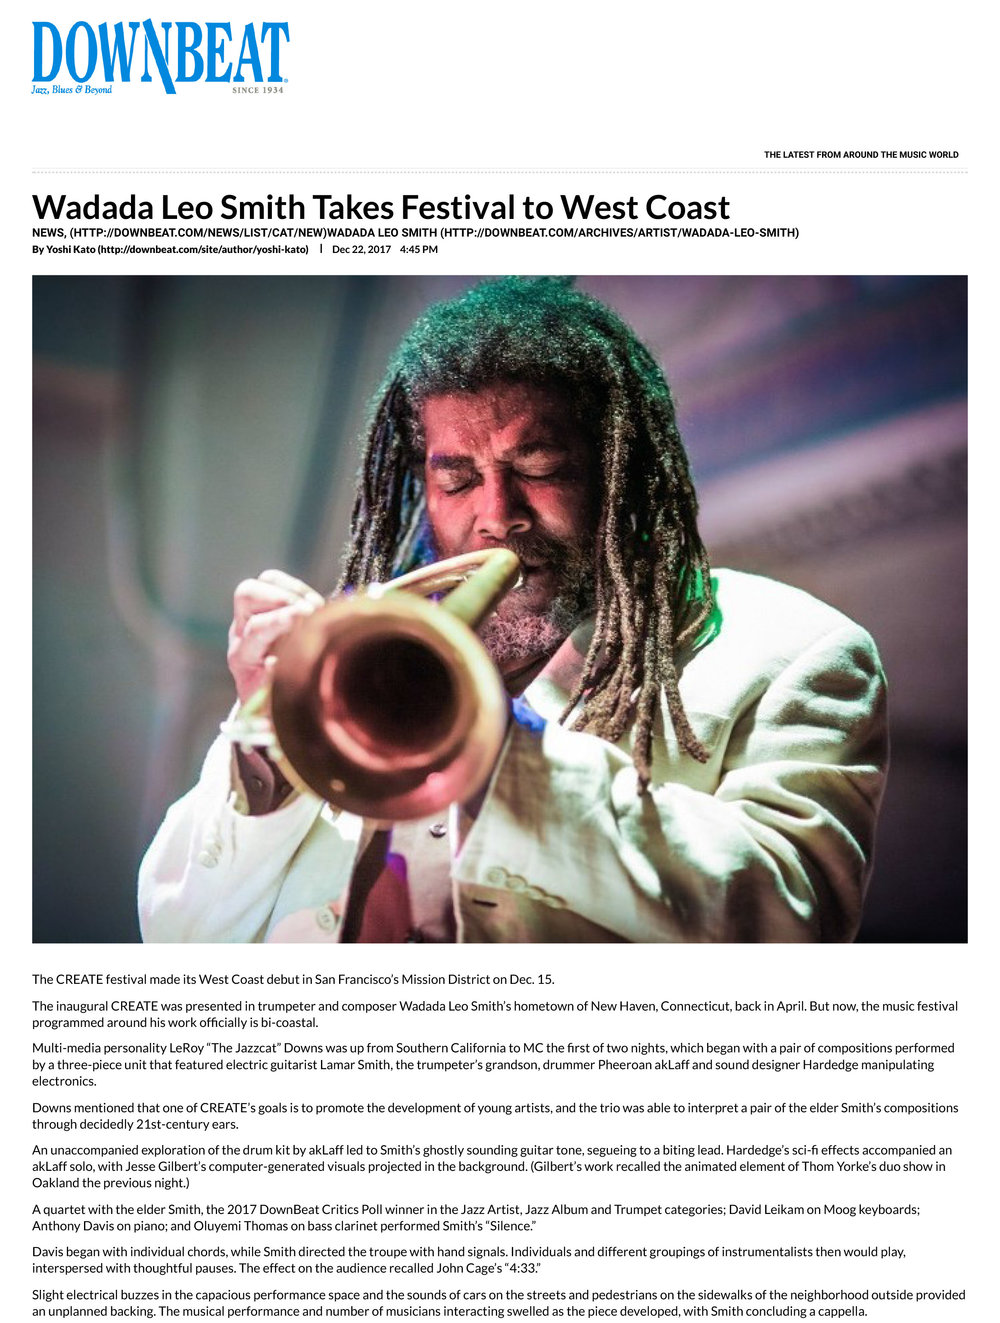 2017 12 30 Wadada Leo Smith DownBeat 1.jpg